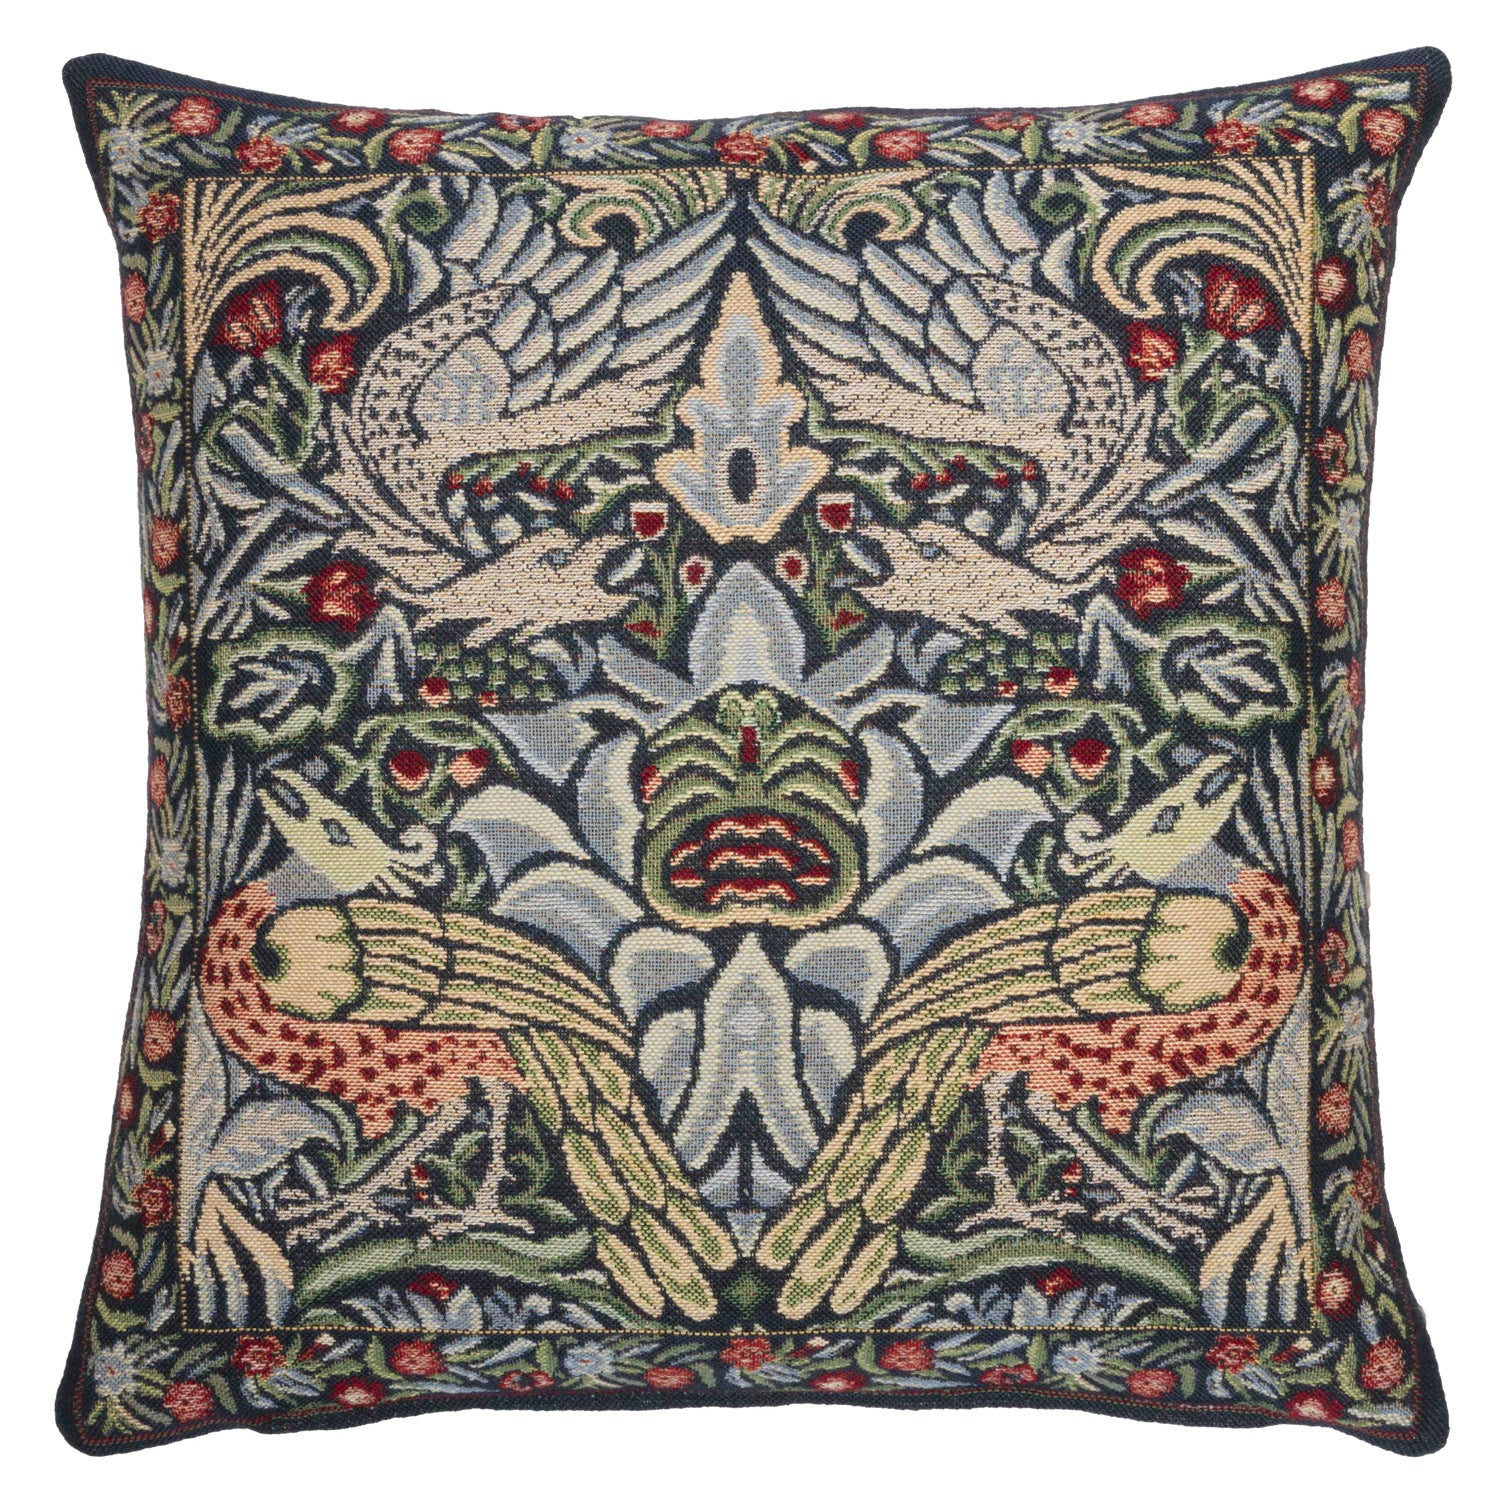 <p>Fine quality jacquard loom woven tapestry cushion with a beige velvet back in the blue Peacock and Dragon design by William Morris.</p>